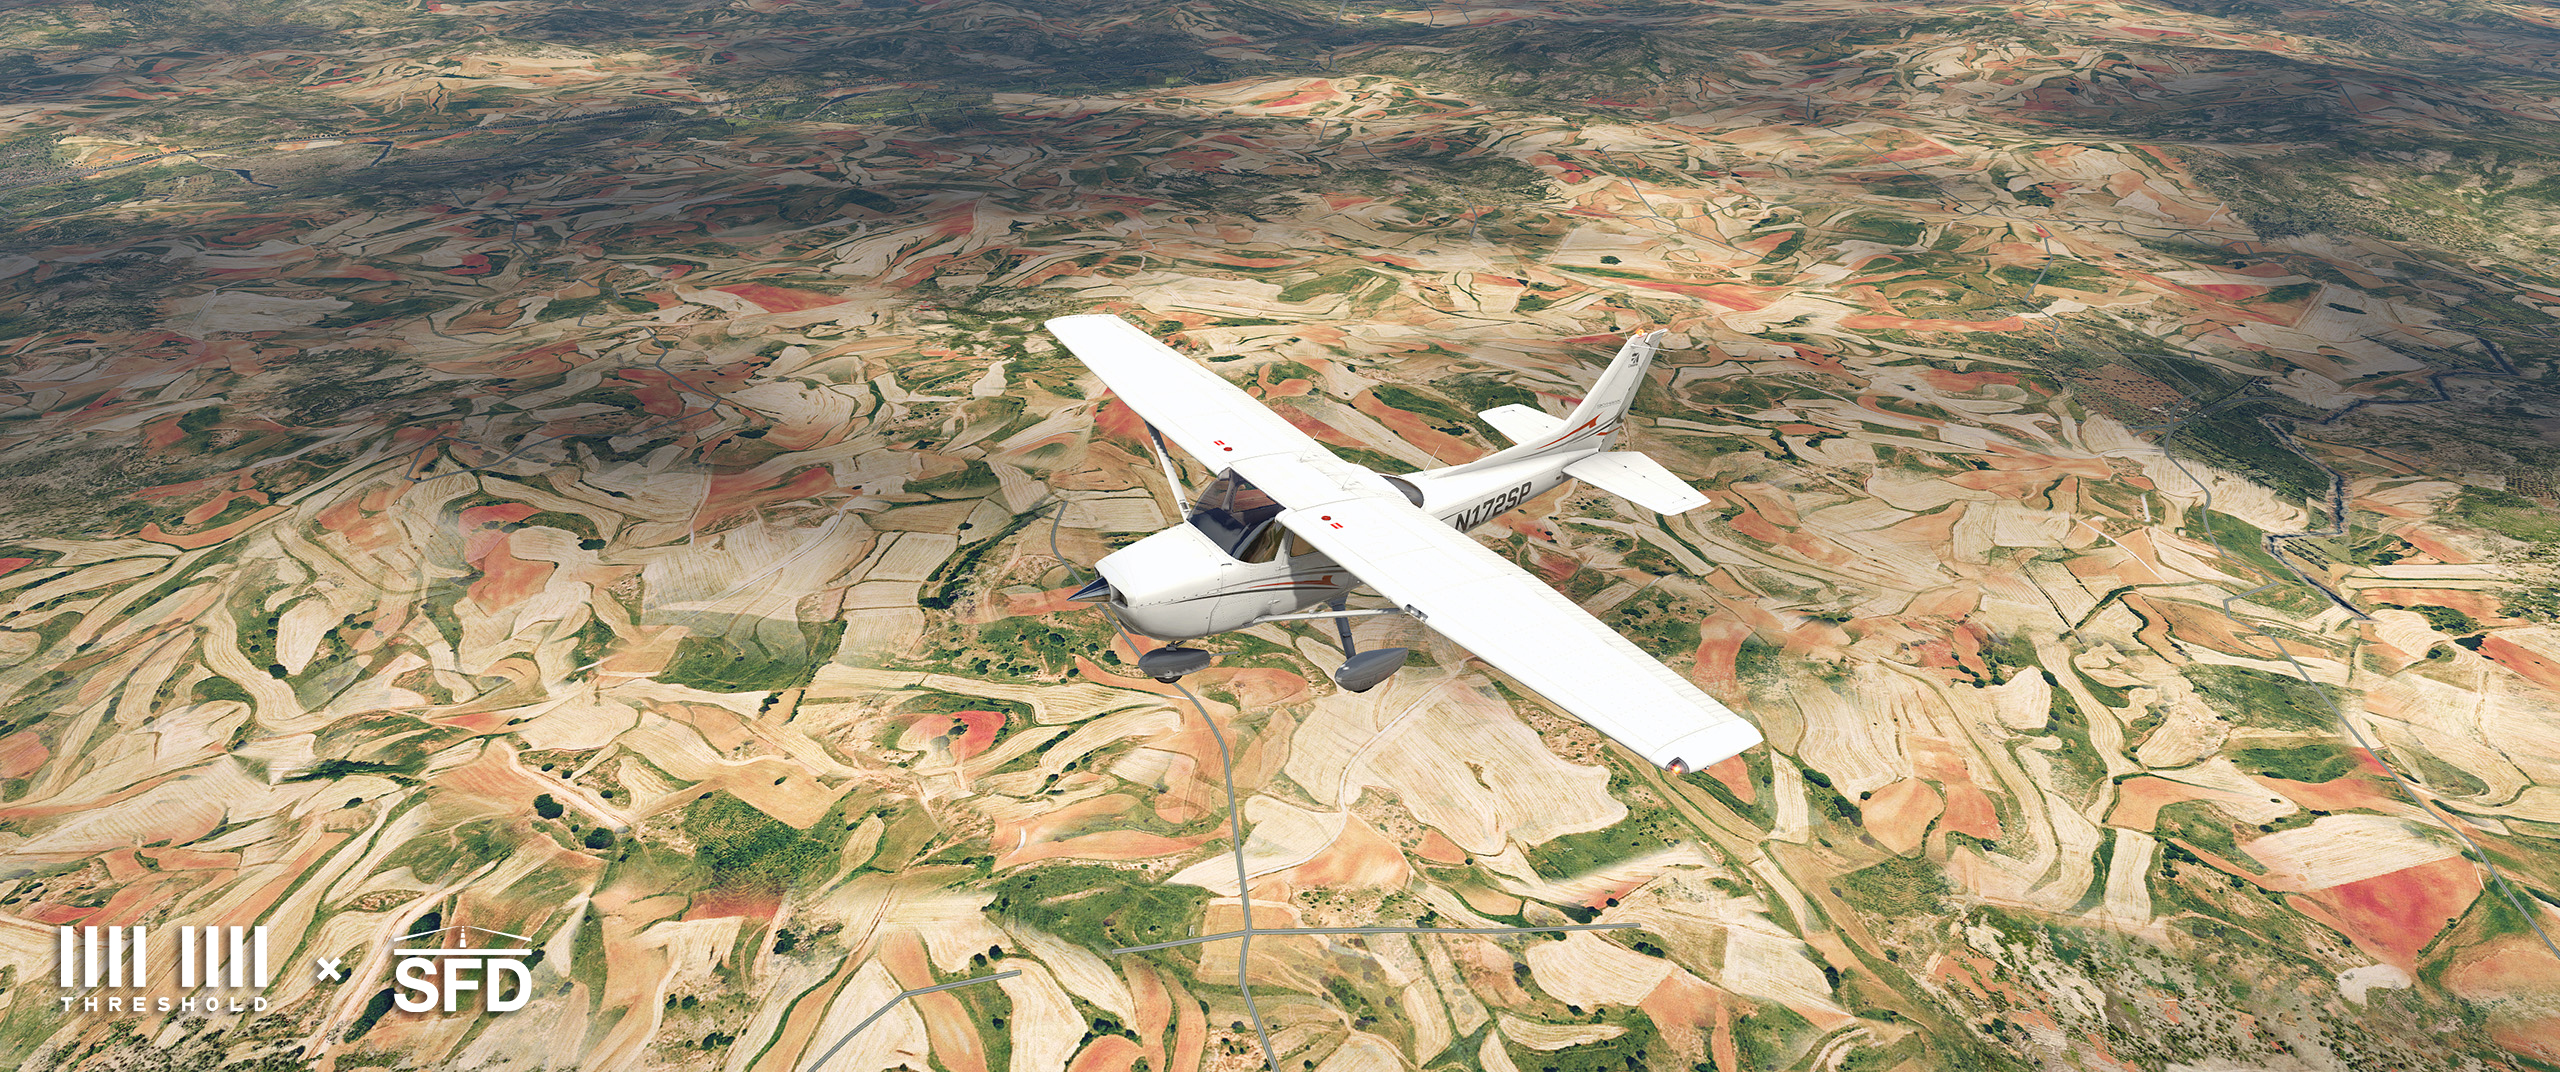 SFD Global - The X-Plane General Discussions Forum - The